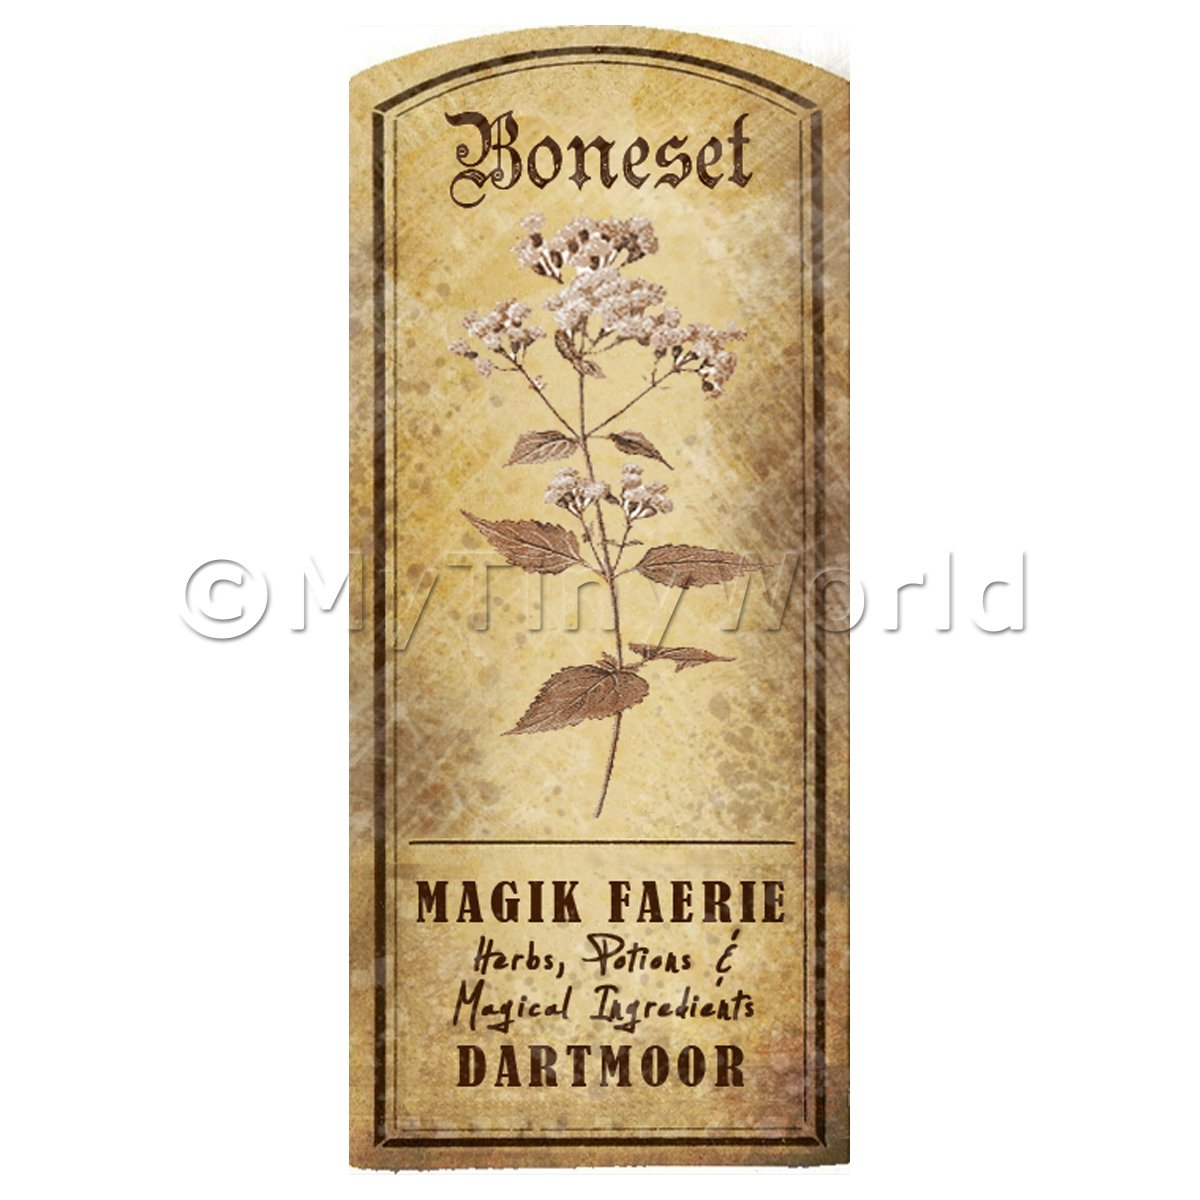 Dolls House Herbalist/Apothecary Boneset Herb Short Sepia Label